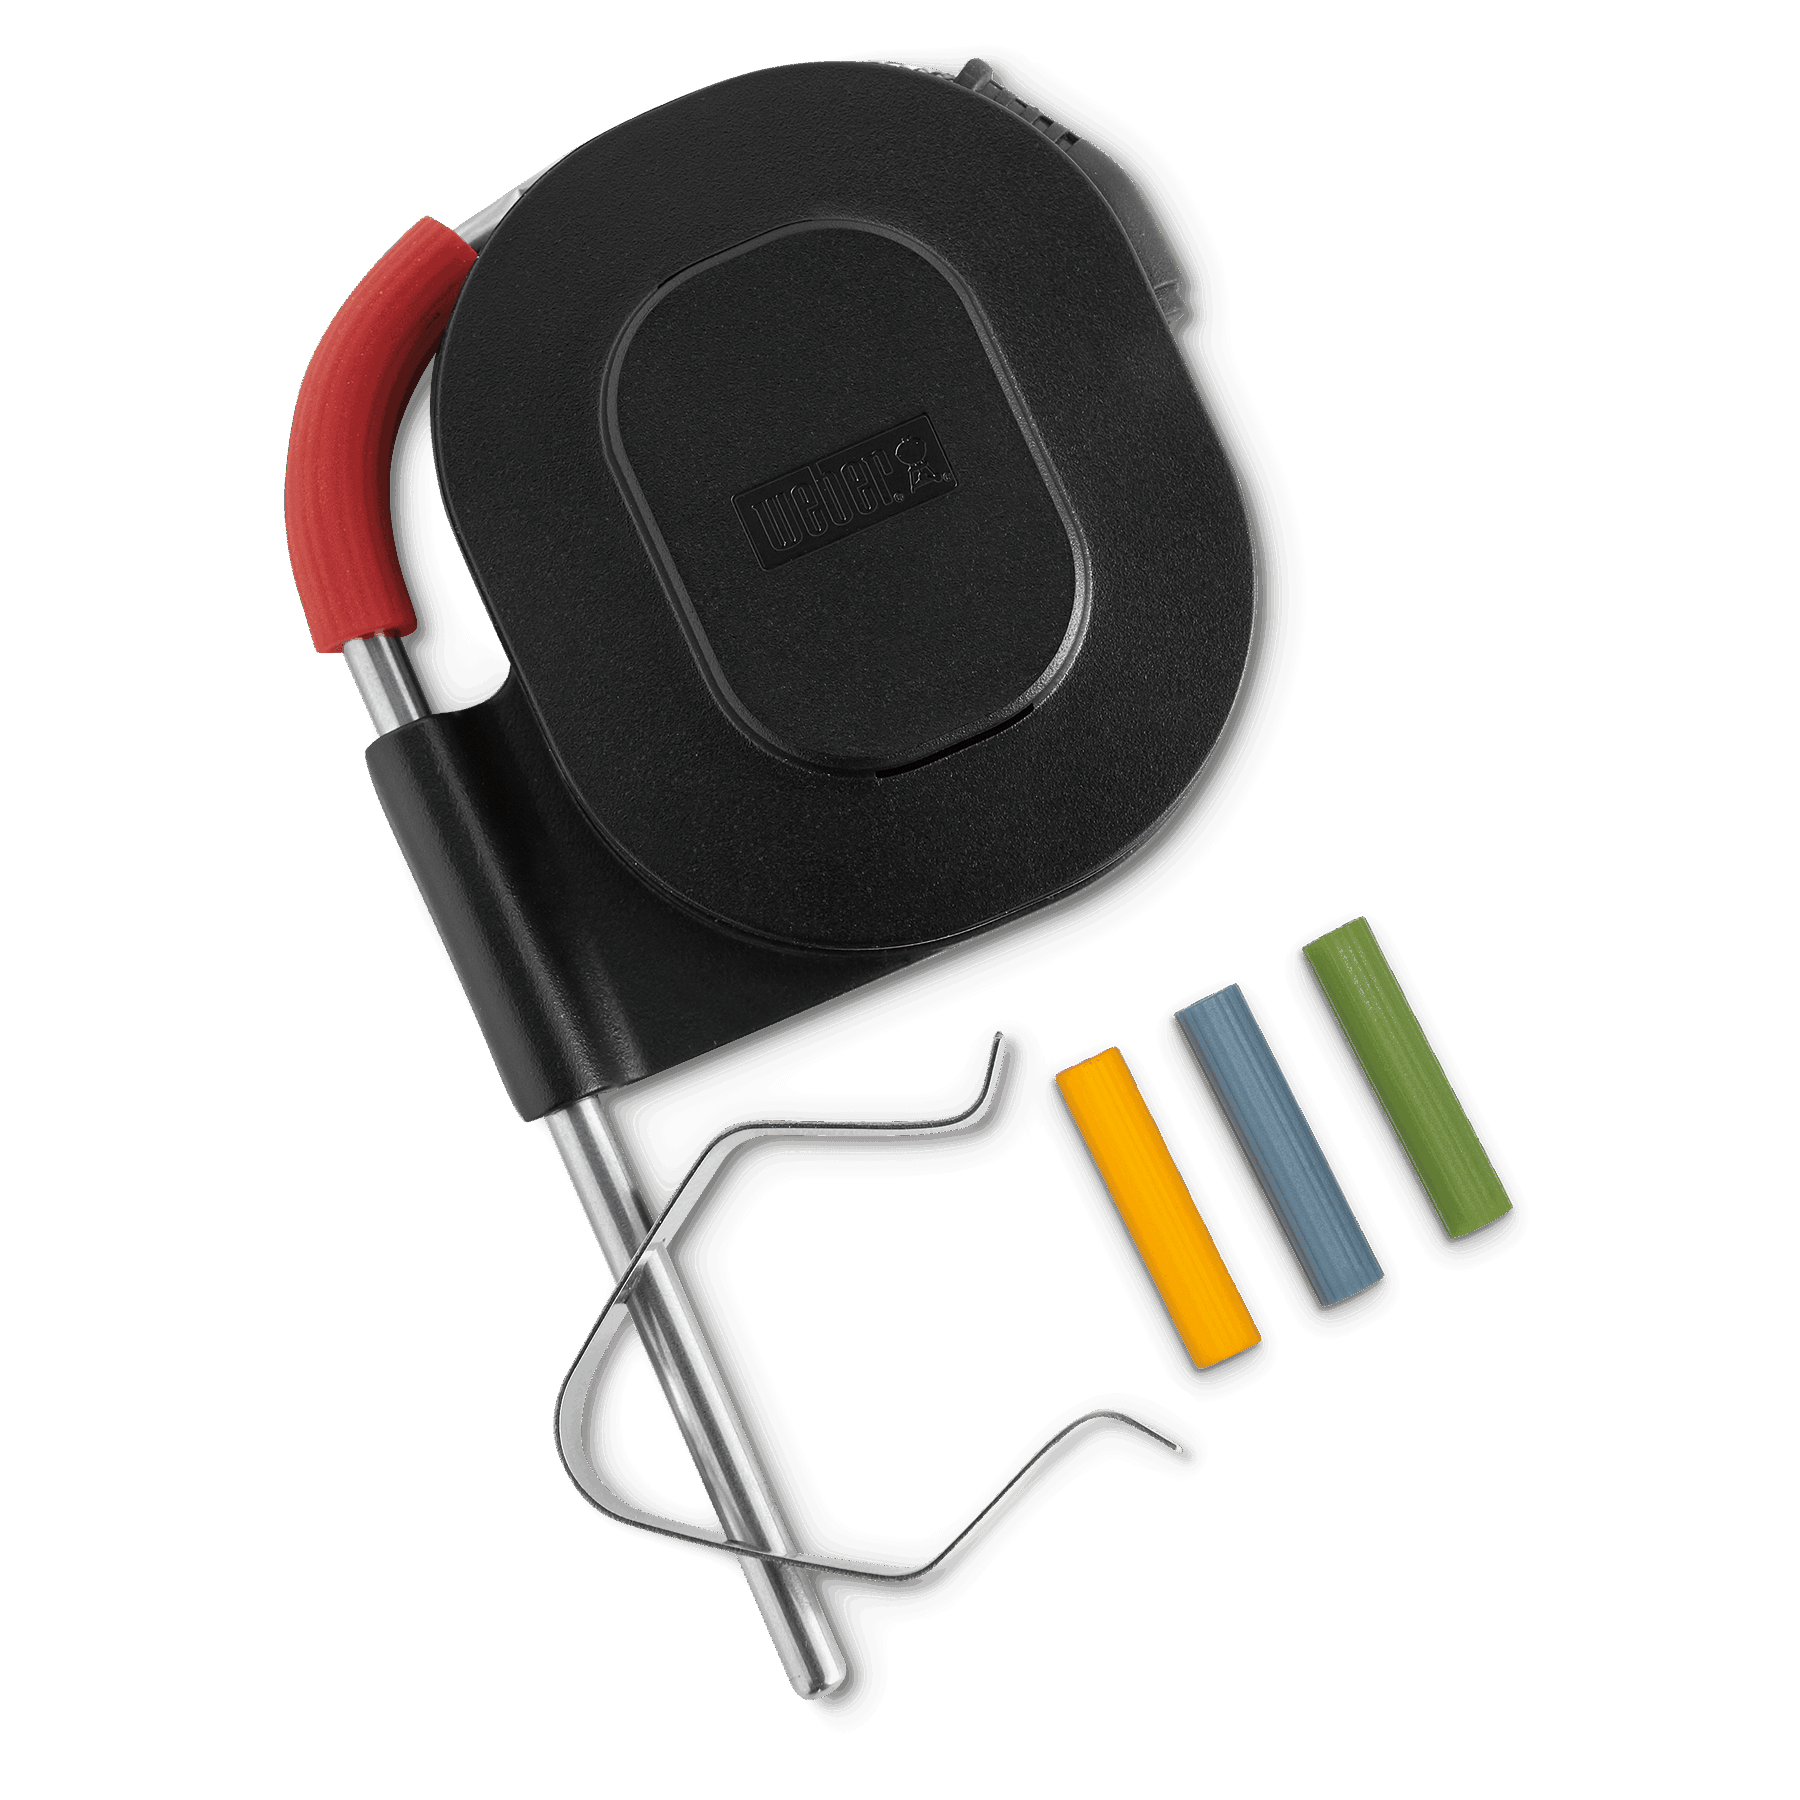 Sonda ambiental iGrill